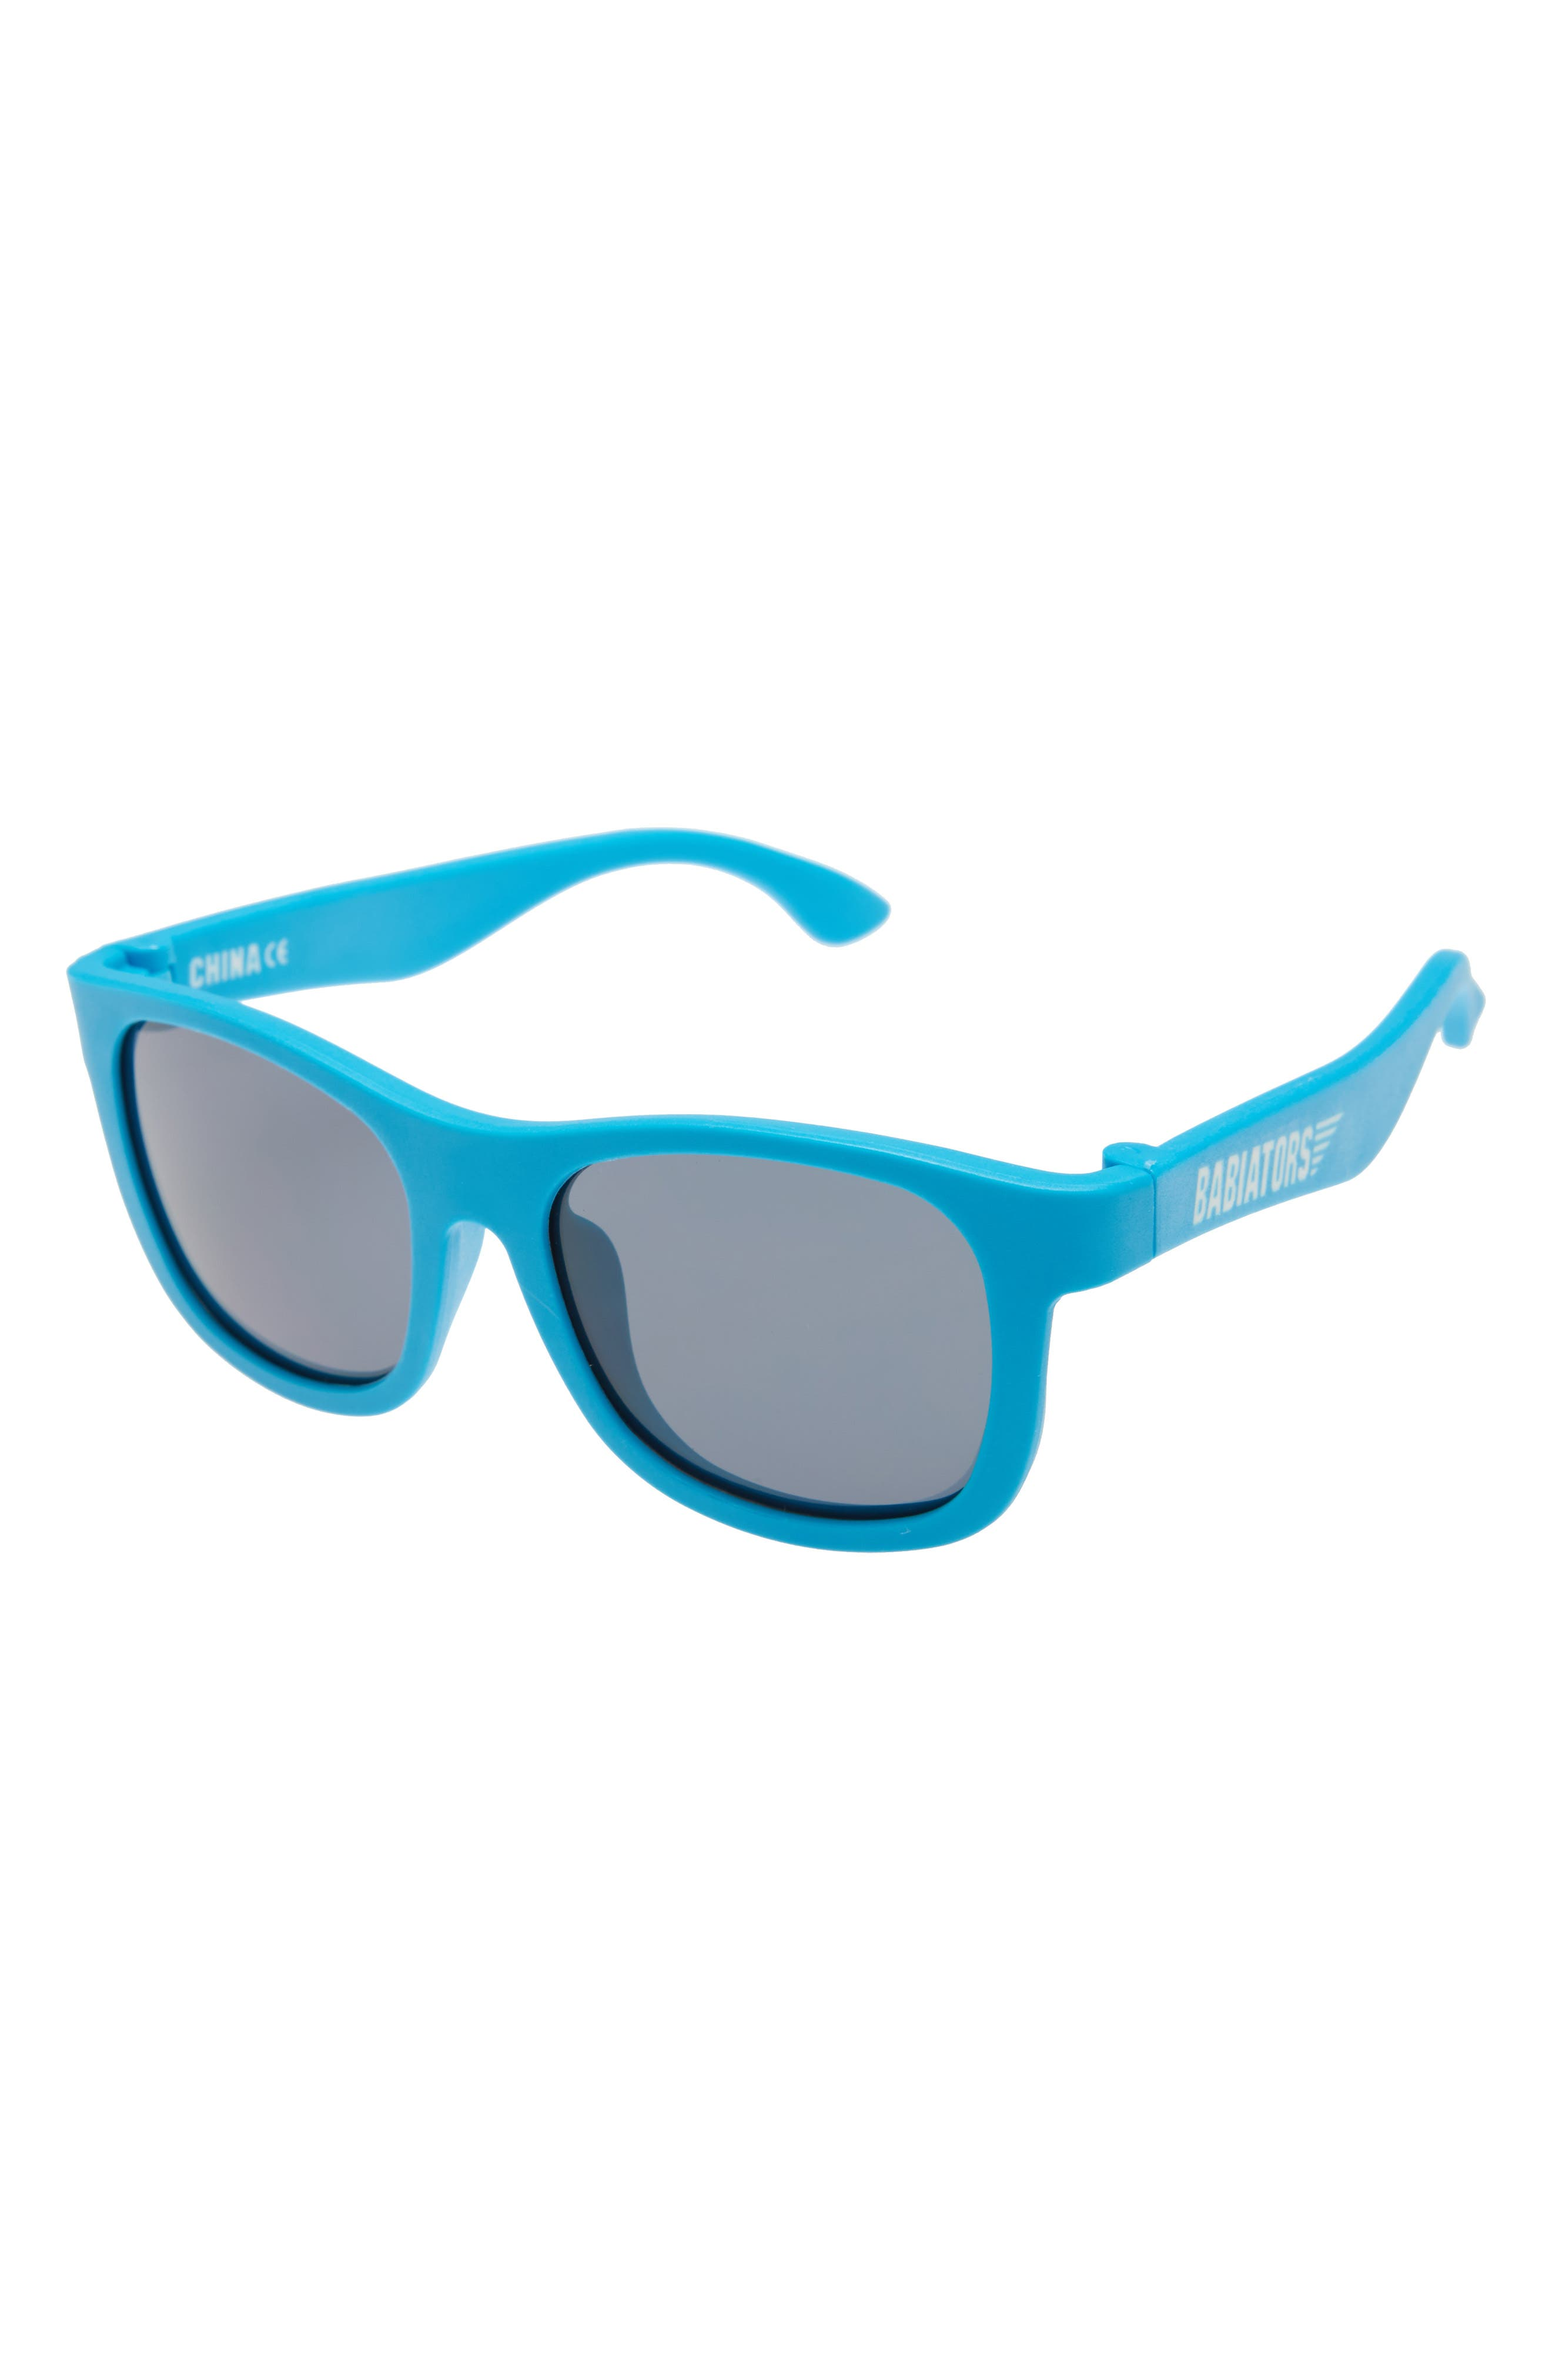 Alternate Image 1 Selected - Babiators Original Navigators Sunglasses (Baby & Little Kid)